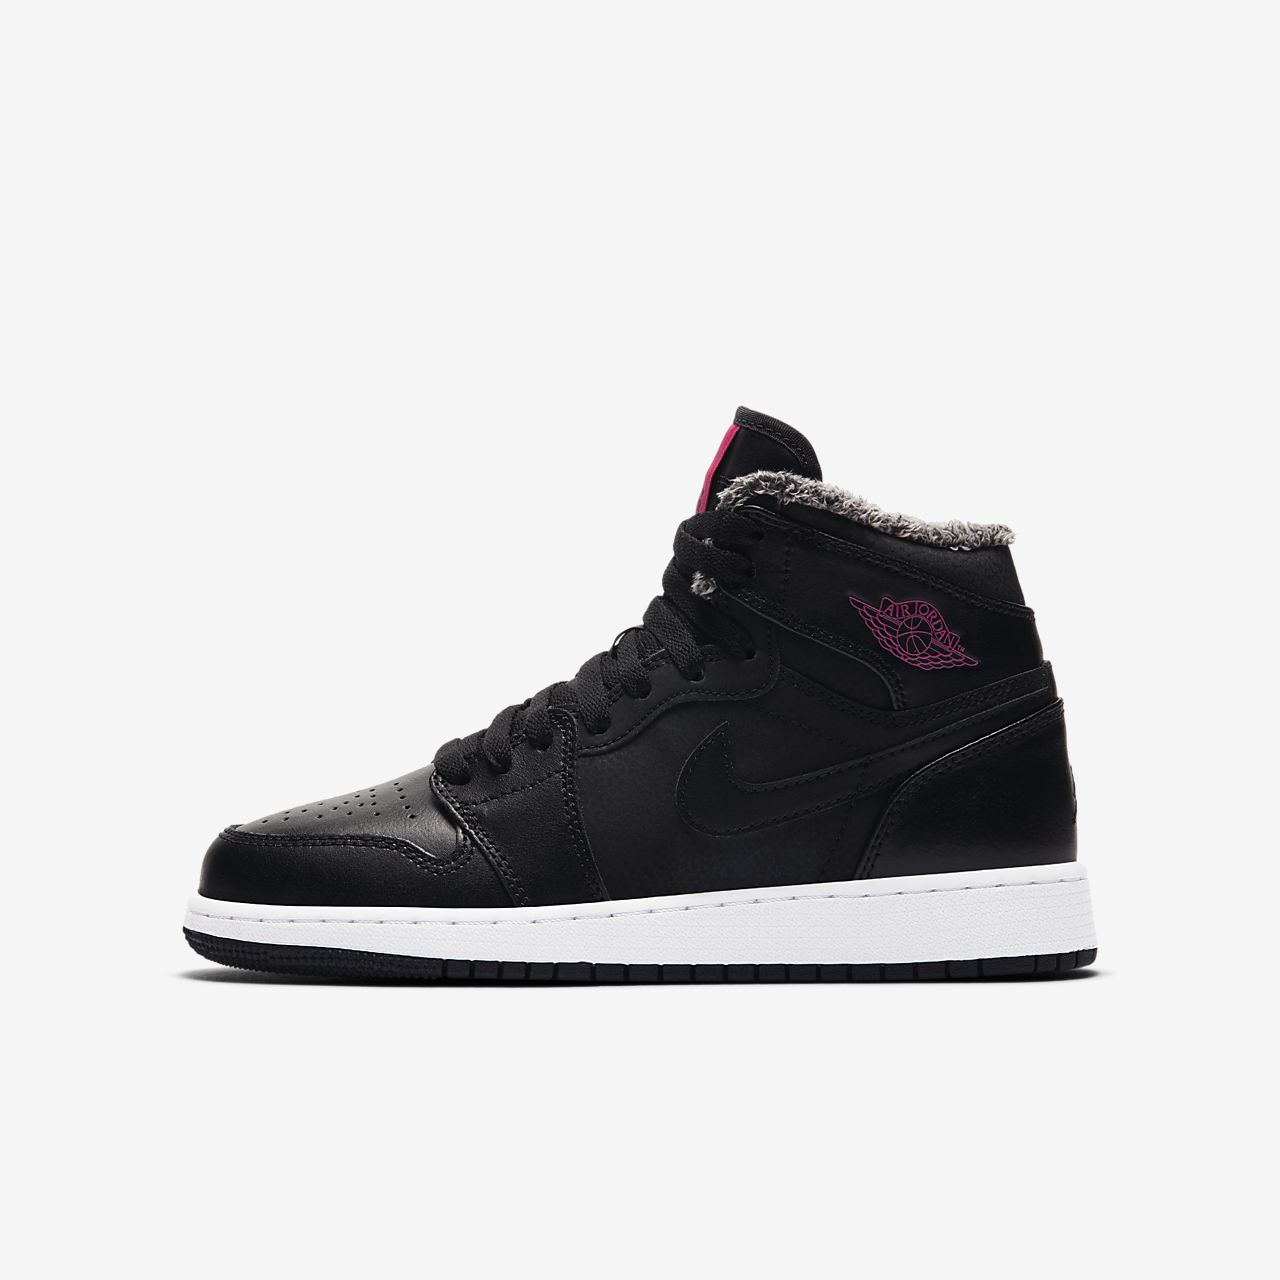 retro jordan 1 kids nz